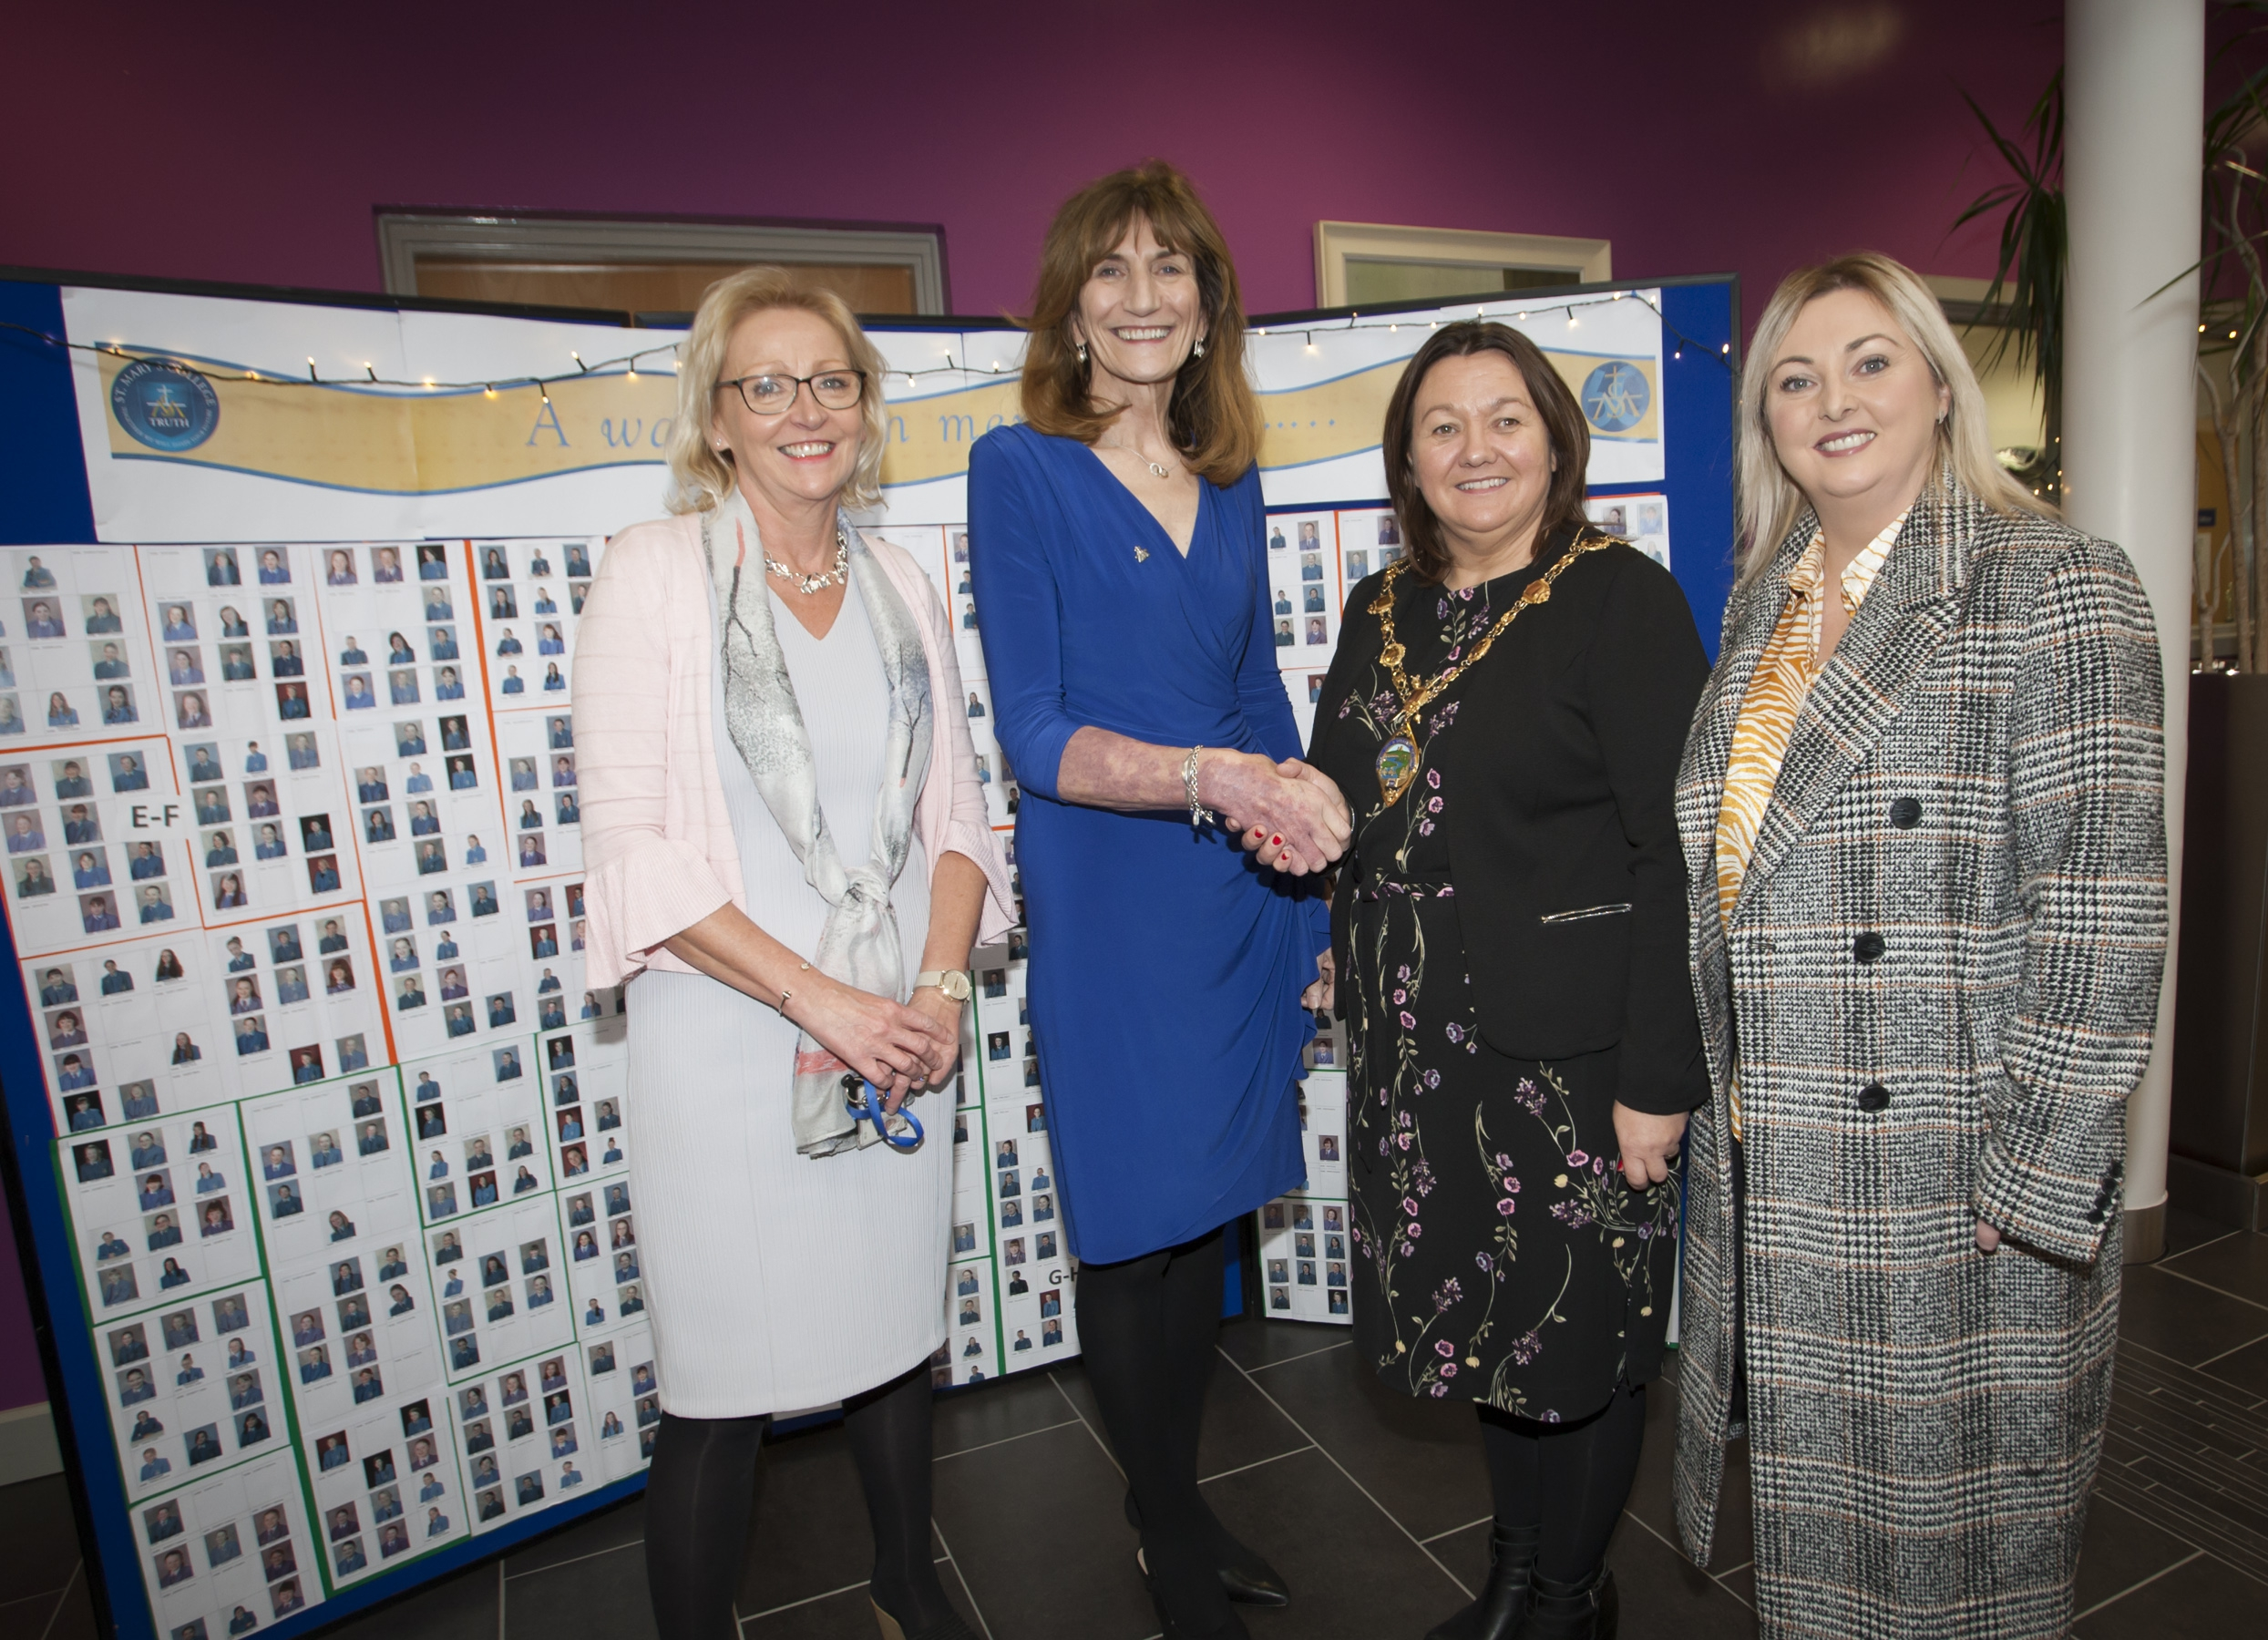 Mrs. Marie Lindsay, Principal, St Mary's College, welcoming the Mayor of Derry City and Strabane District Council, Michaela Boyle to the school's 60th Anniverary Exhibition on Friday afternoon. Included in photo is Mrs. Finola Downey, Office Manager and Karen Mullan, Foyle MLA.